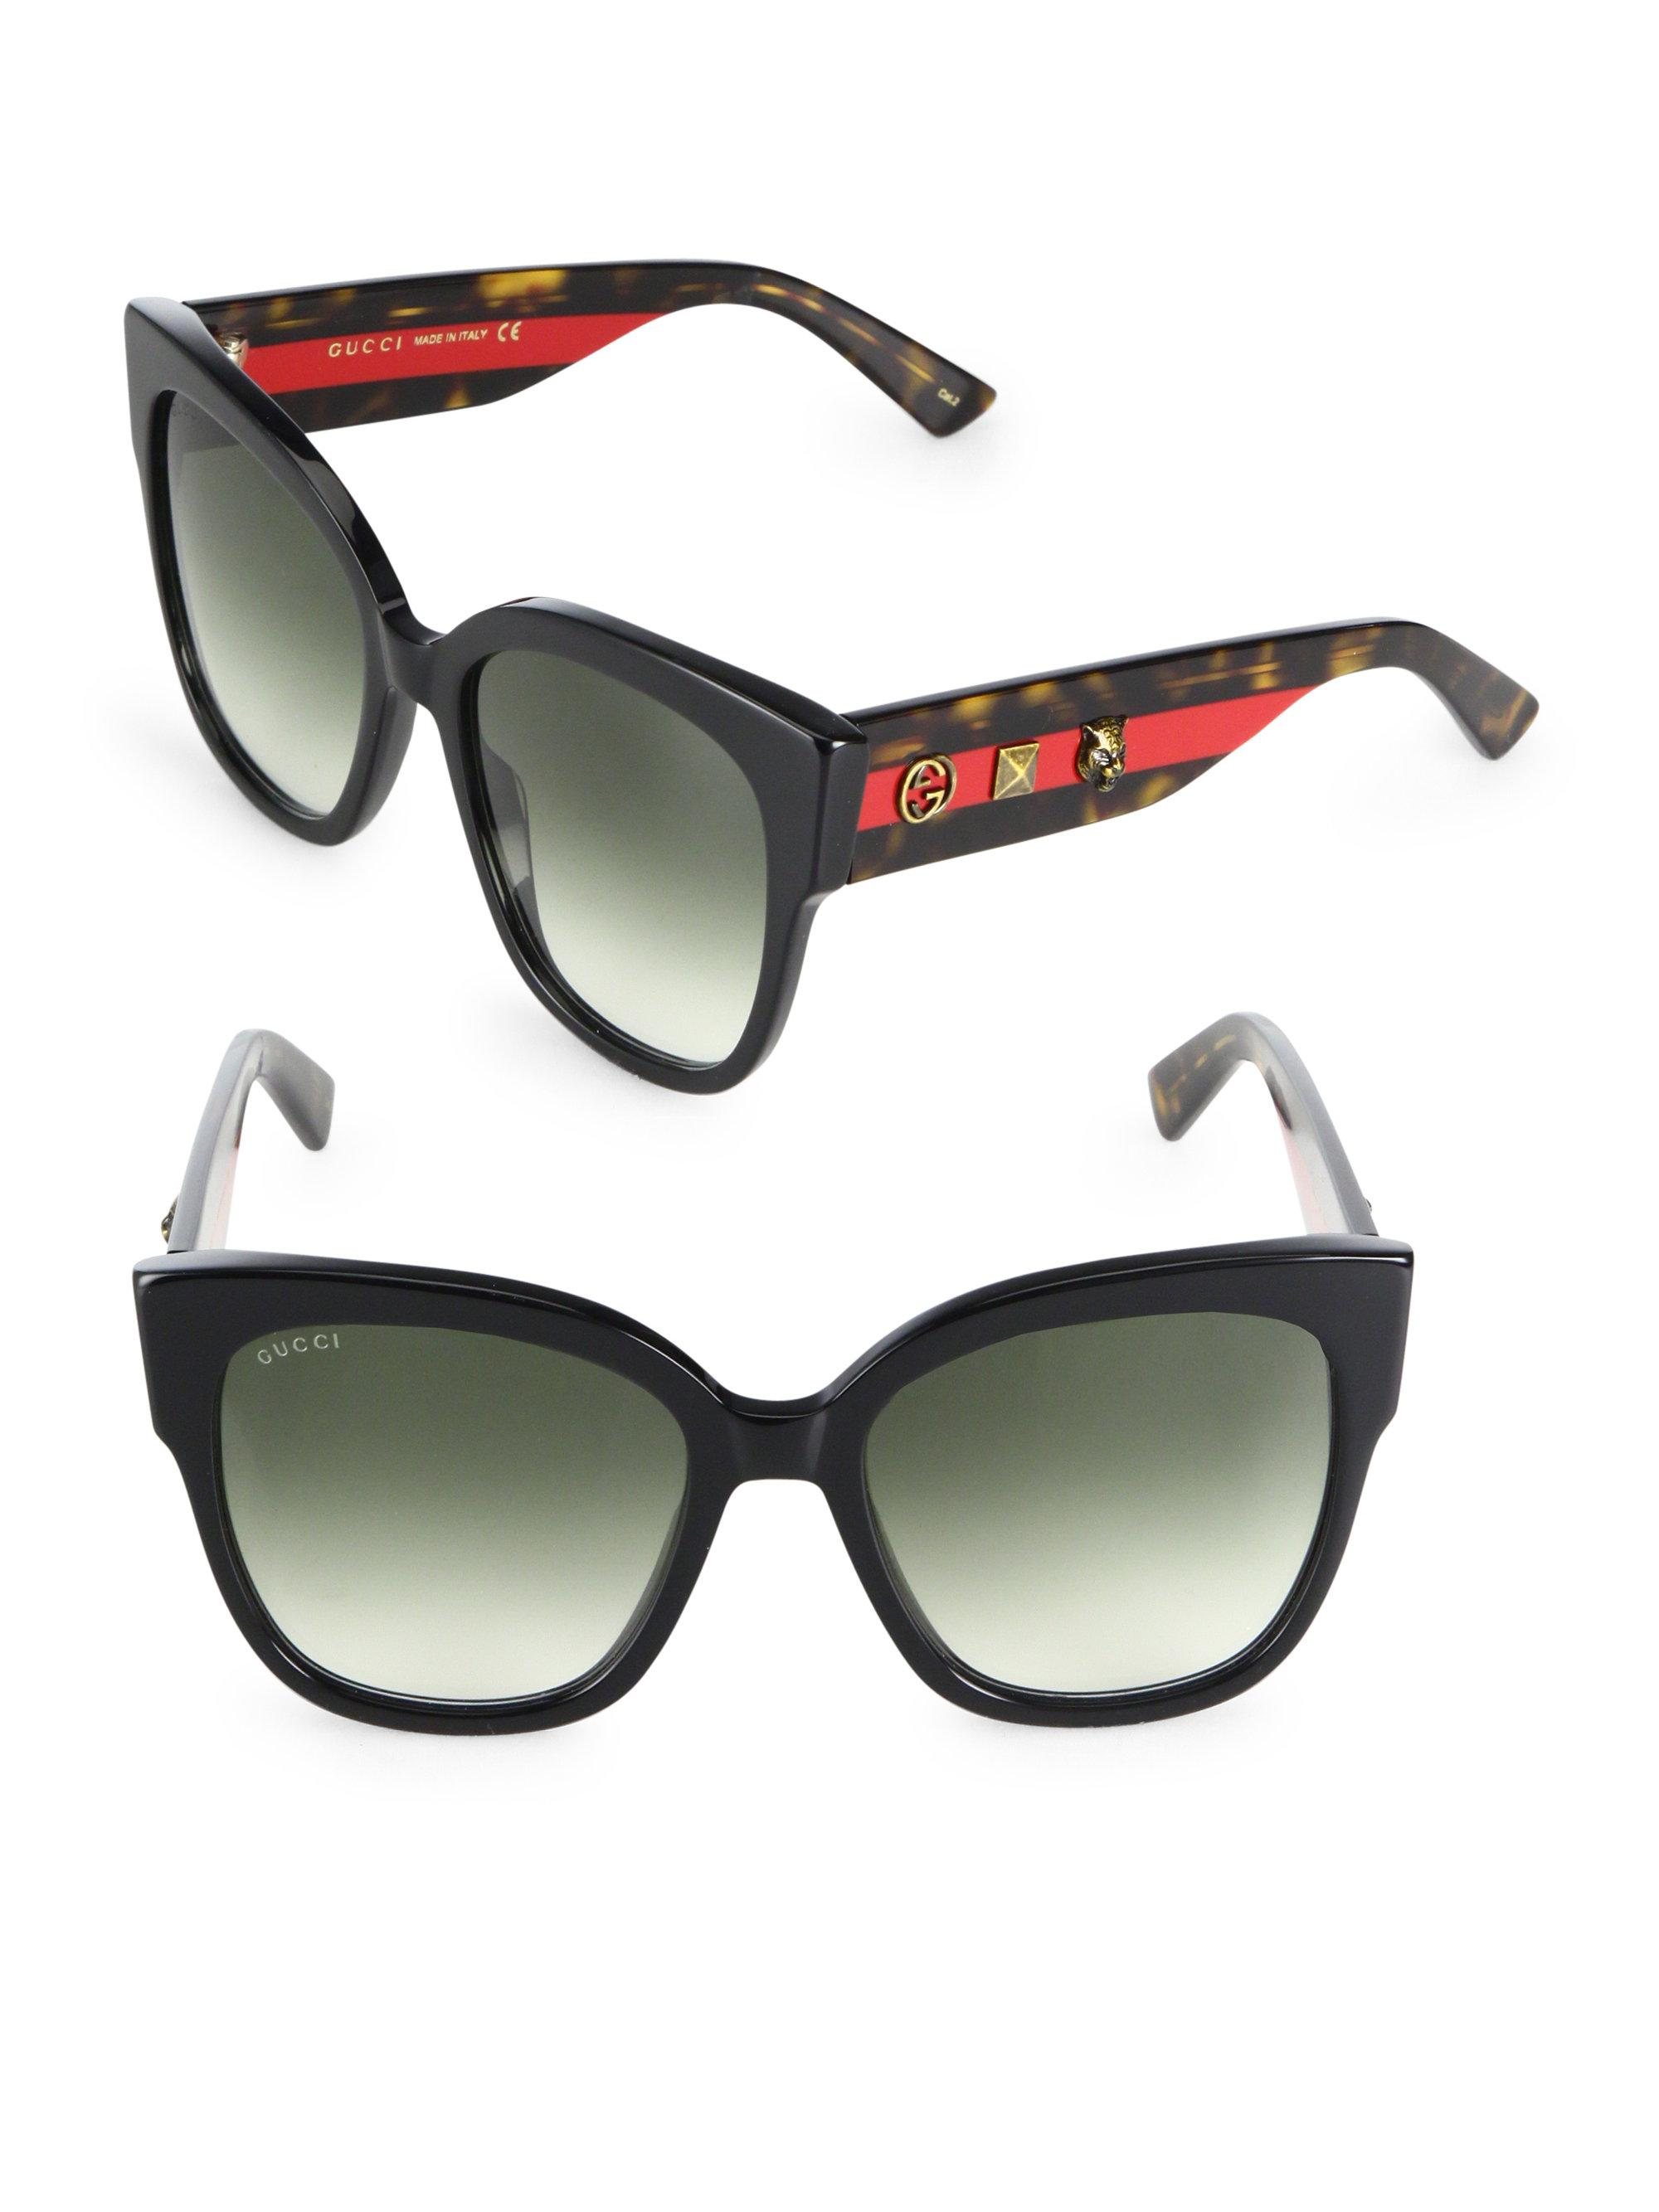 957580d81 Gucci 55mm Oversized Studded Square Cat Eye Sunglasses in Black - Lyst